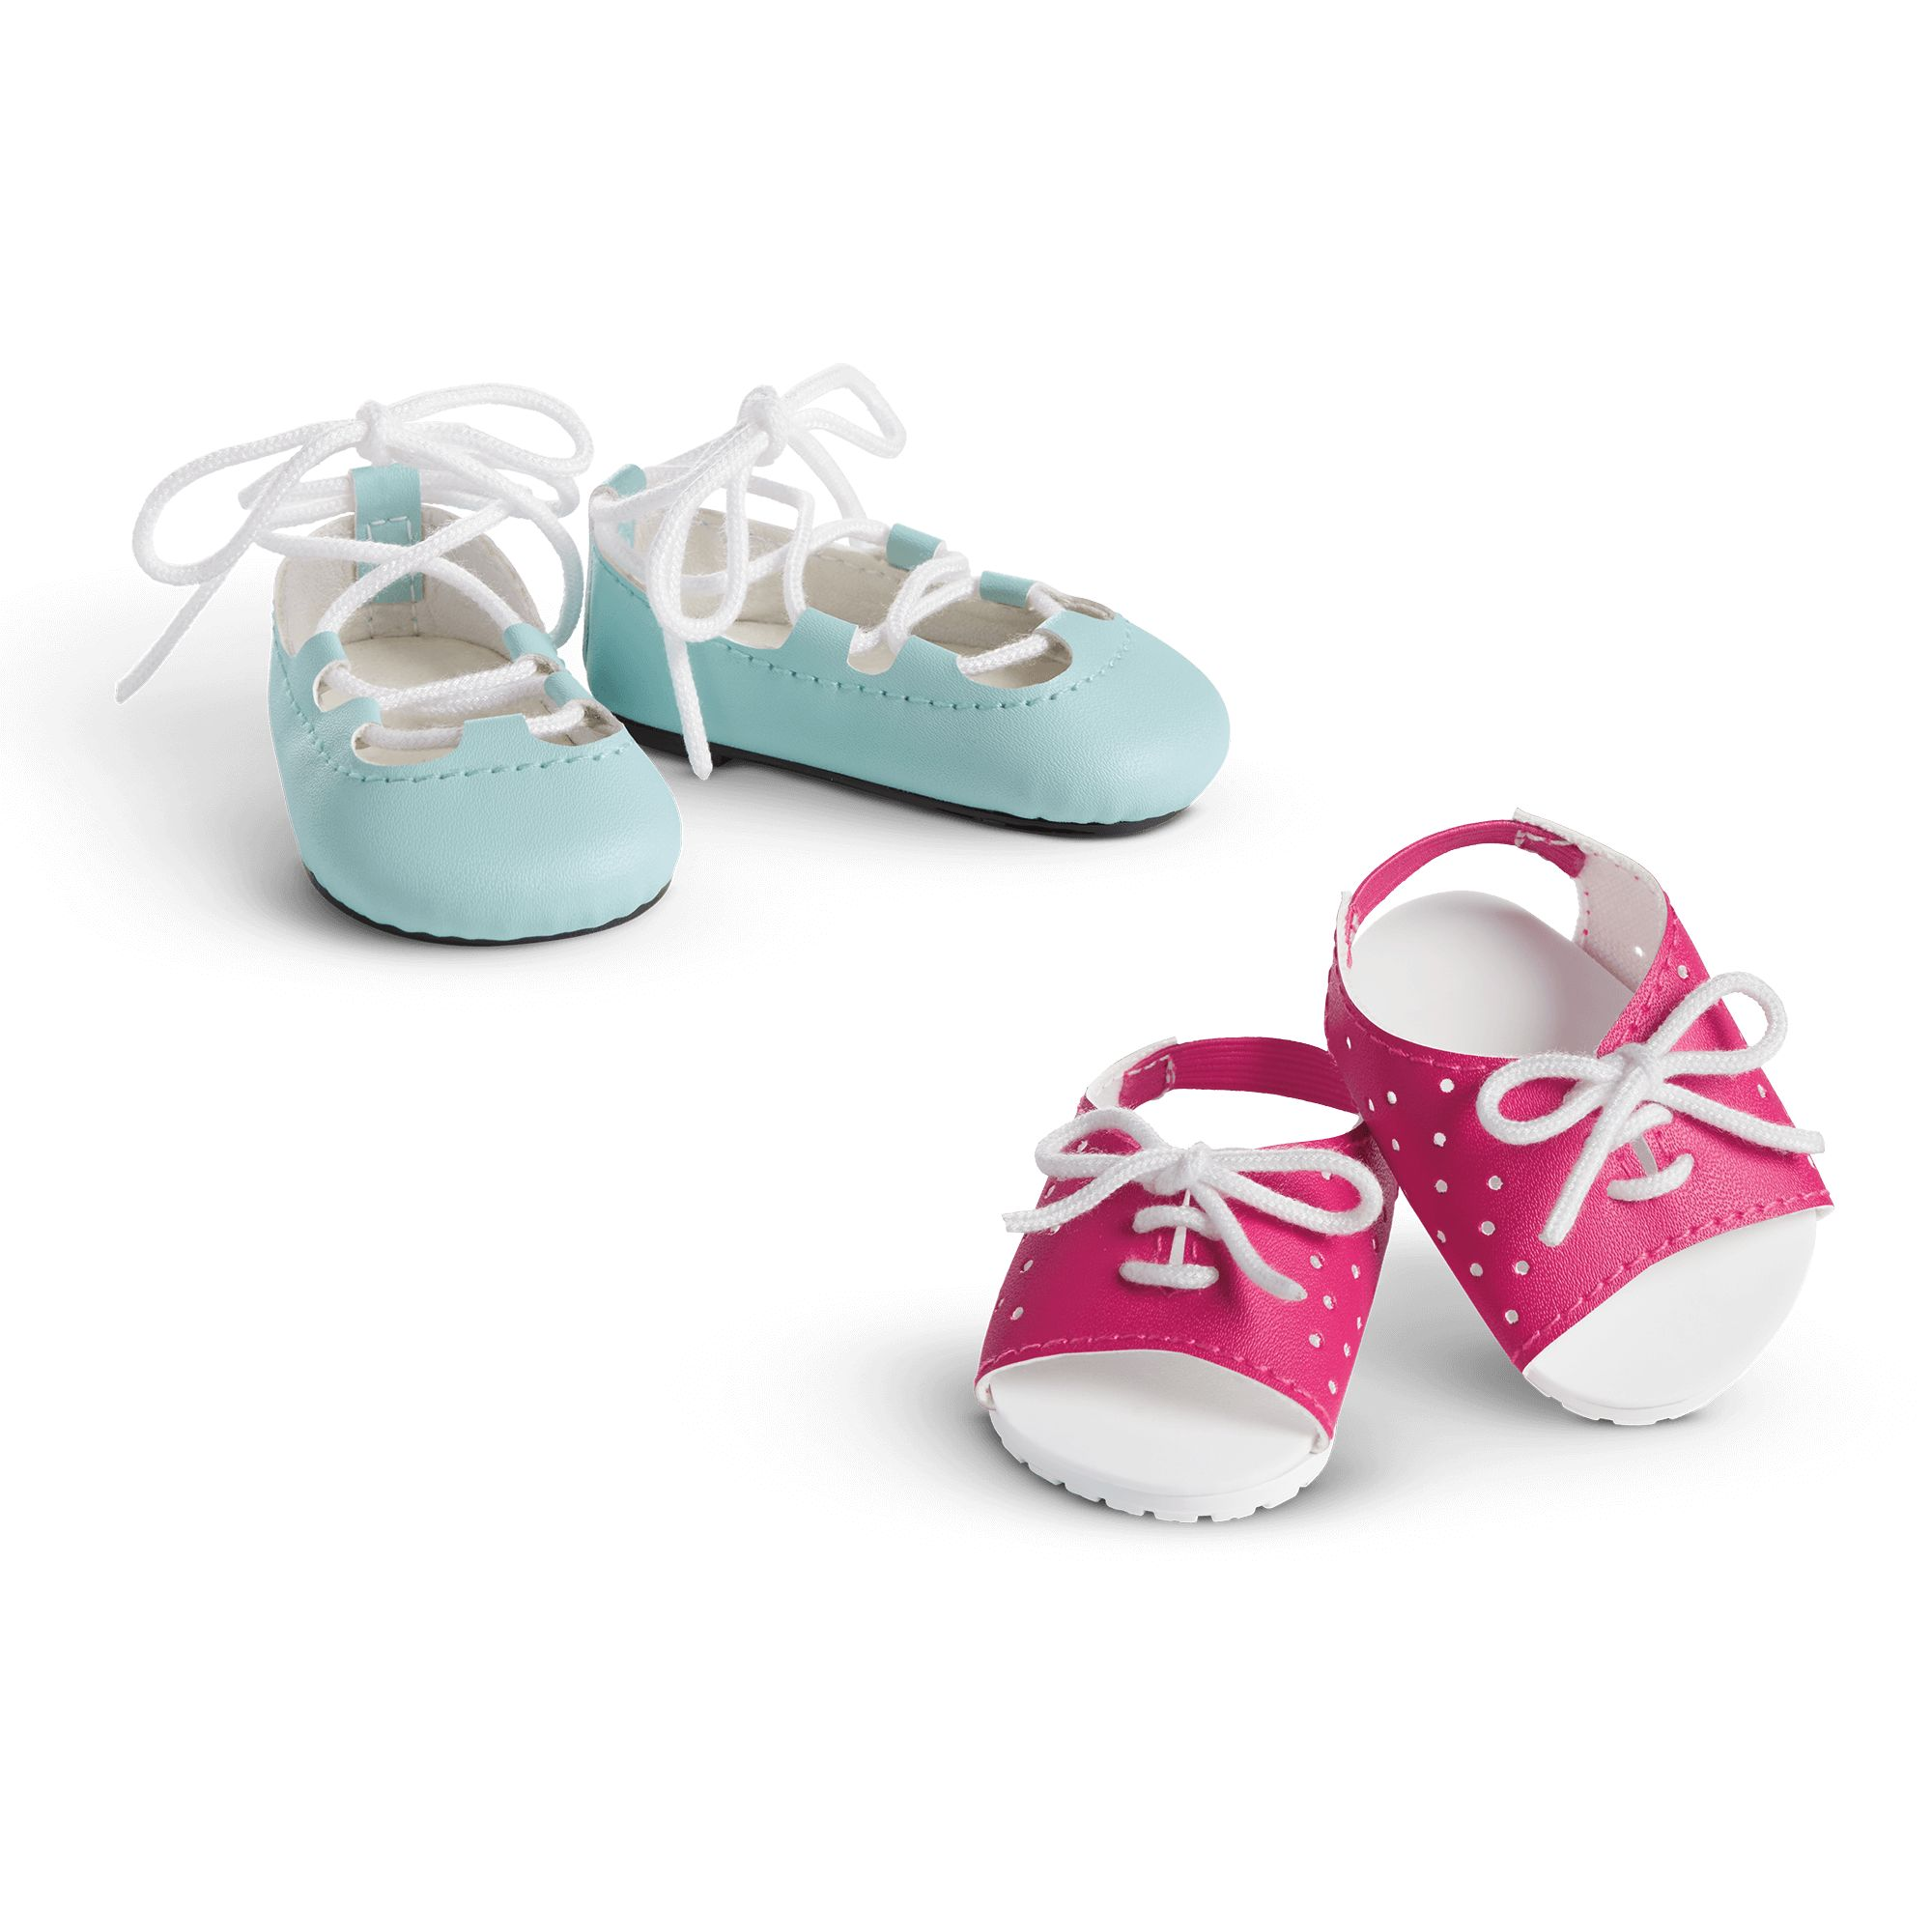 Sneakers and Flats Set